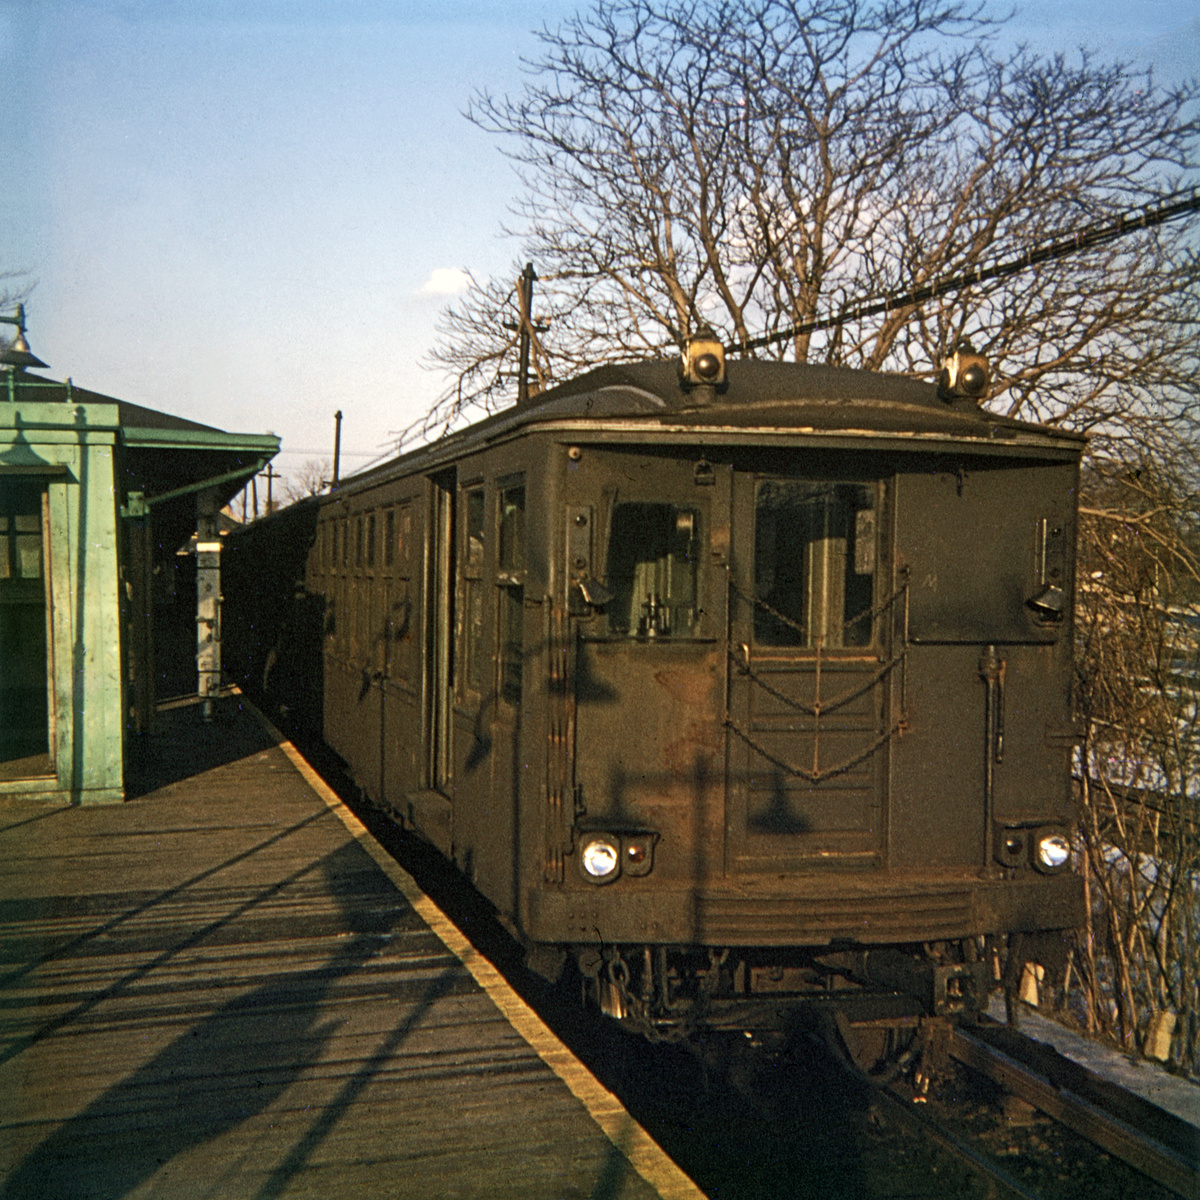 (530k, 1044x849)<br><b>Country:</b> United States<br><b>City:</b> New York<br><b>System:</b> New York City Transit<br><b>Line:</b> BMT Myrtle Avenue Line<br><b>Location:</b> Metropolitan Avenue <br><b>Car:</b> BMT Q  <br><b>Photo by:</b> Steve Hoskins<br><b>Collection of:</b> David Pirmann<br><b>Date:</b> 1/1967<br><b>Viewed (this week/total):</b> 8 / 2606